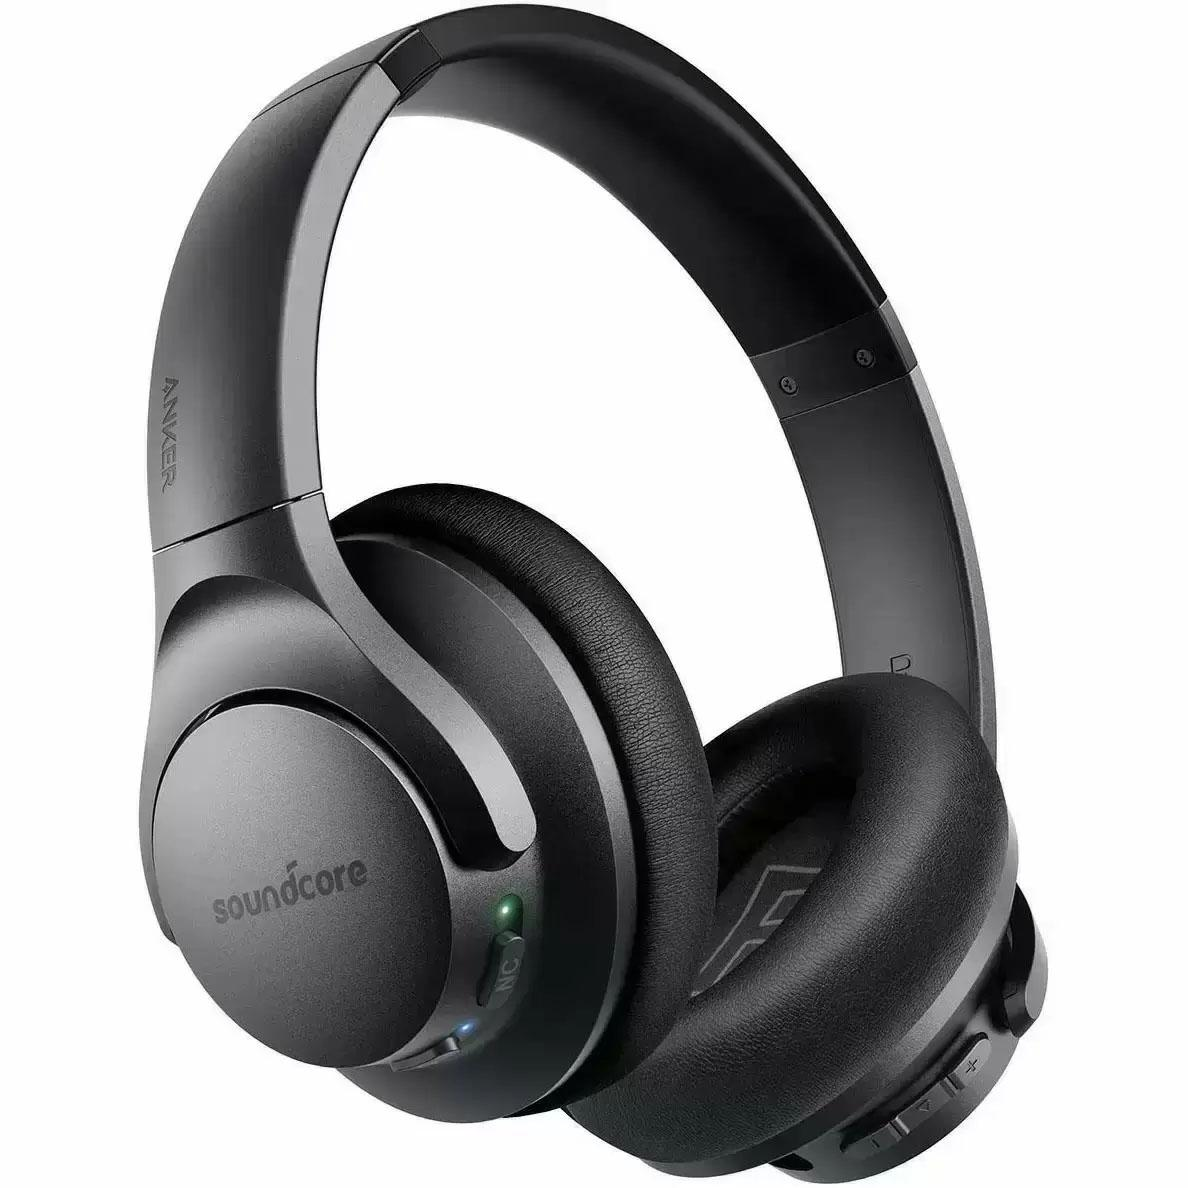 Anker Soundcore Life Q20 Noise Cancelling Headphones for $44.99 Shipped